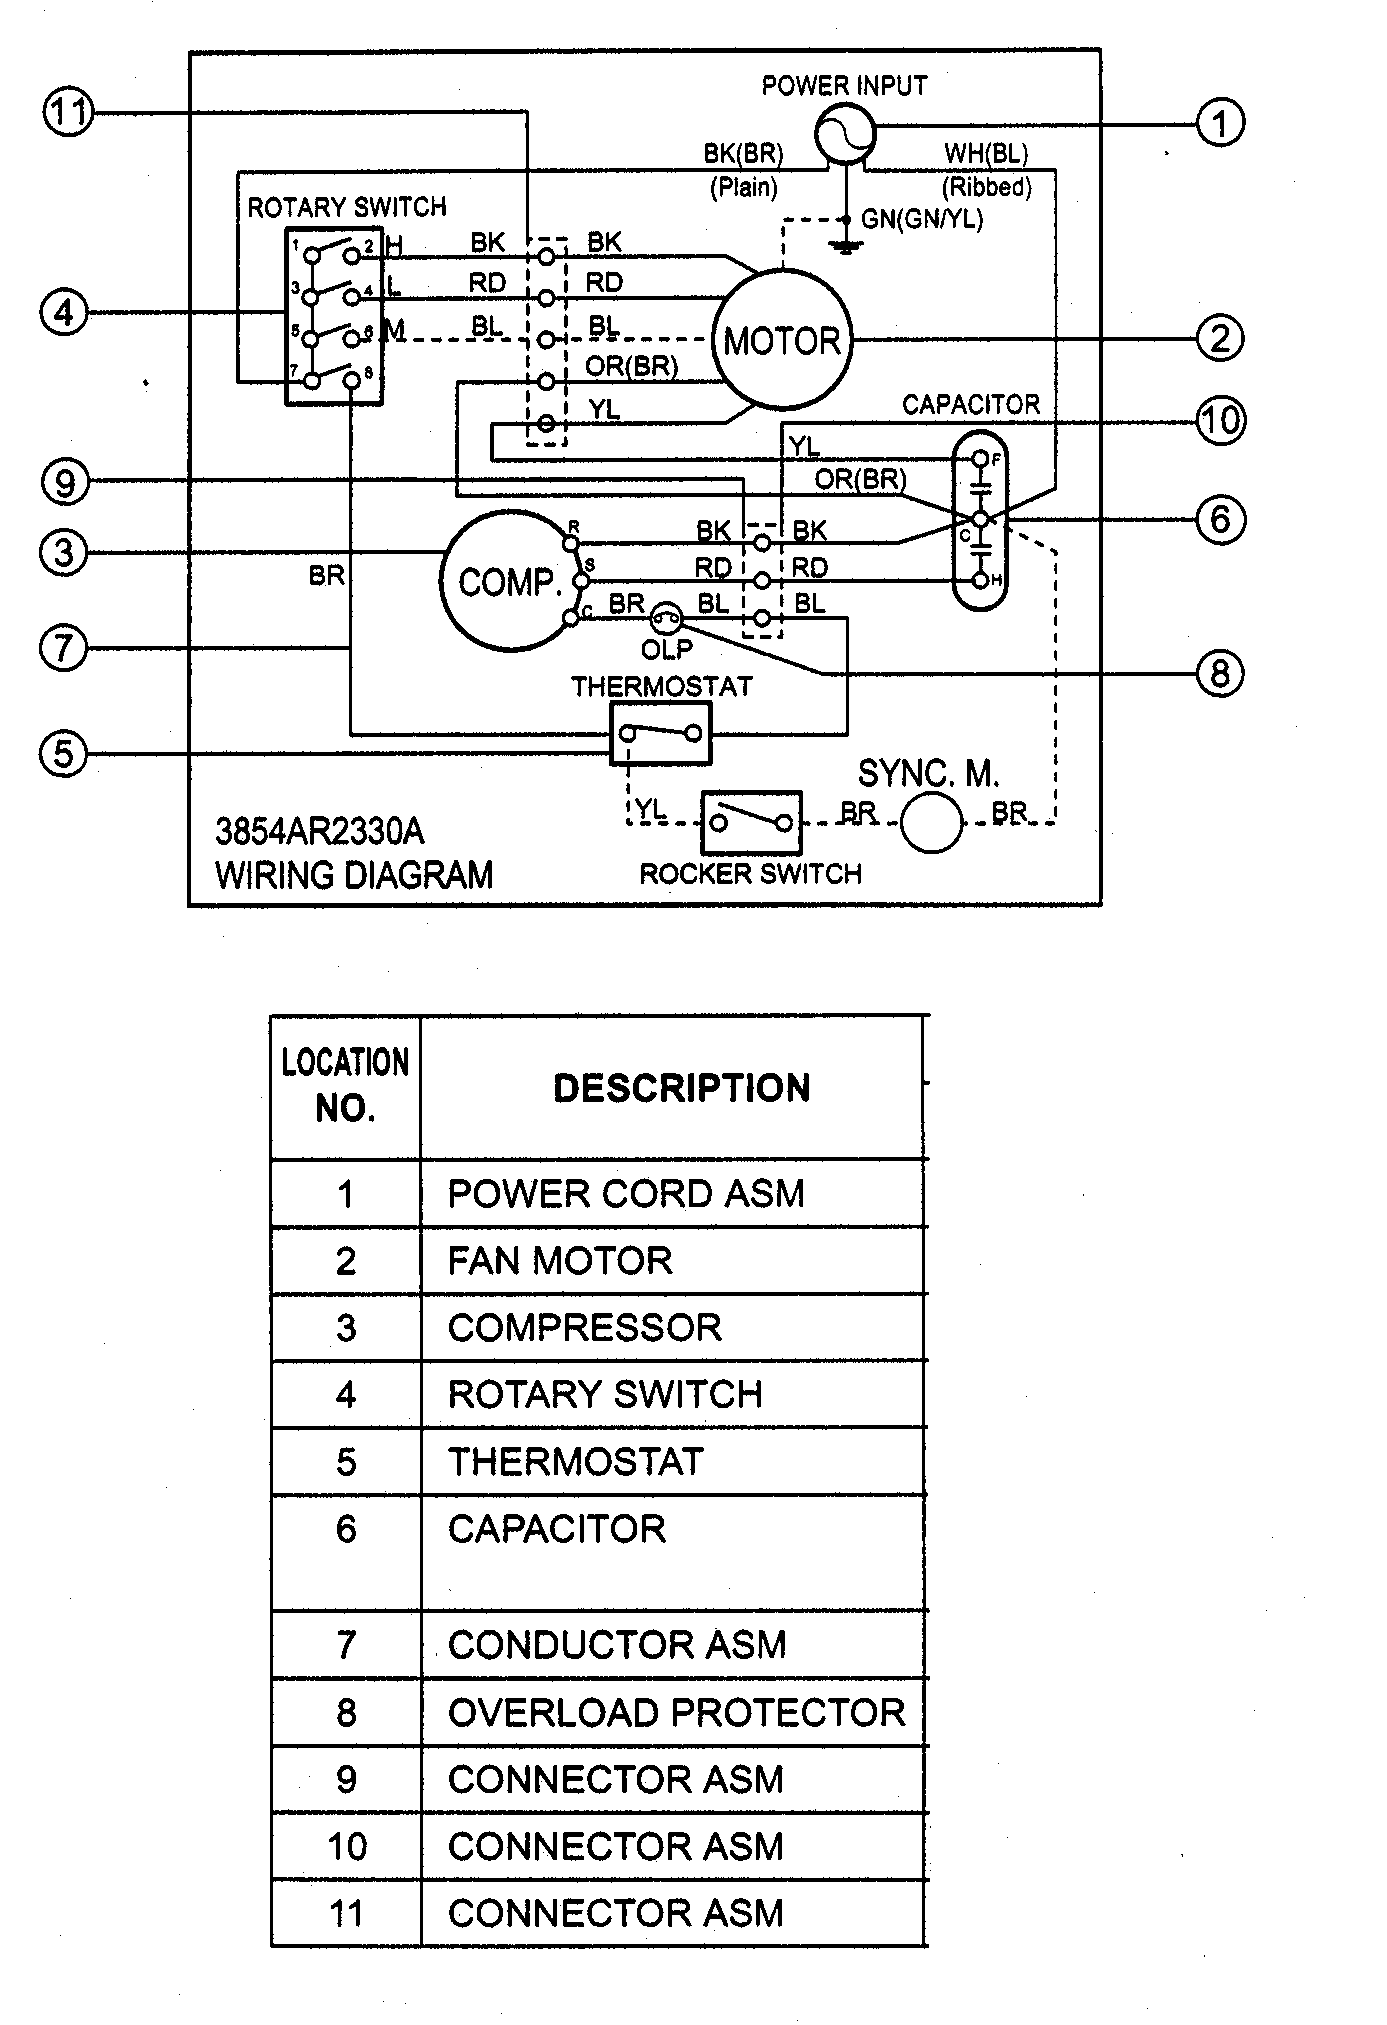 hight resolution of ac capacitor wiring diagram whirlpool